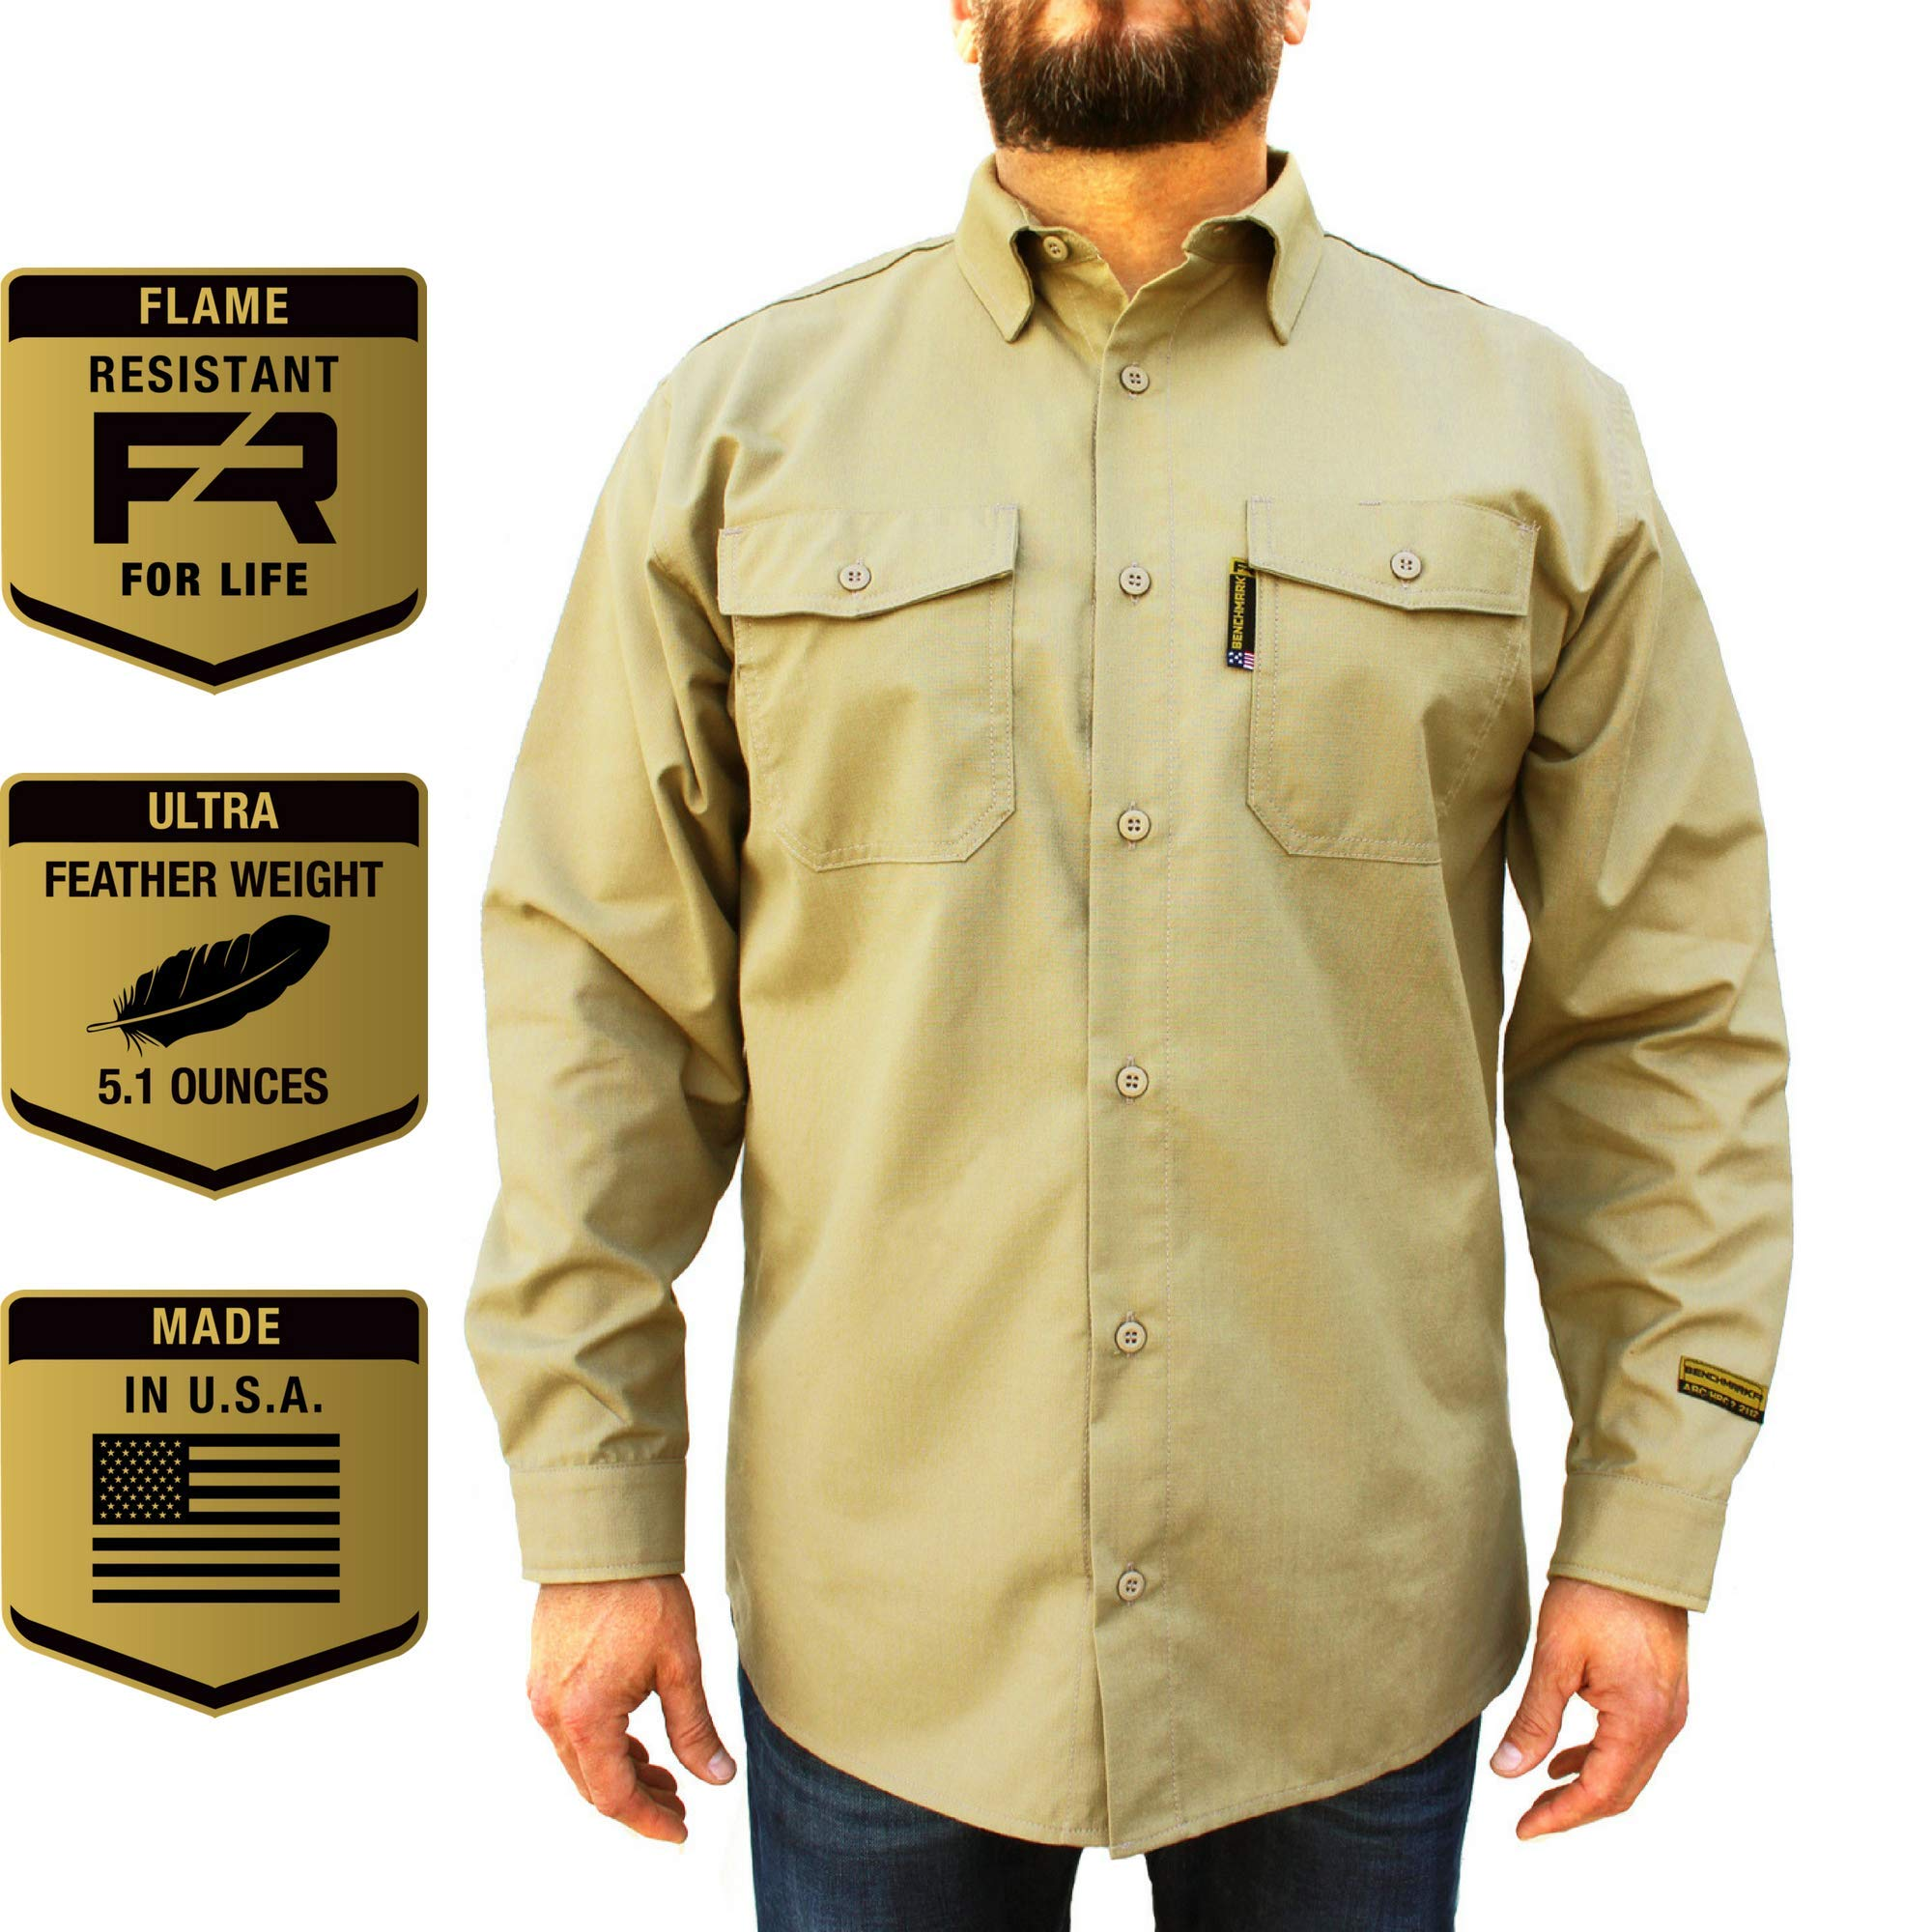 Benchmark FR Silver Bullet, 5.1 oz Ultra Lightweight FR Shirt, NPFA 2112 & CAT 2, Moisture Wicking, Men's FRC with 9 Cal rating, Made in USA, Advanced FR Materials, Beige, Large by Benchmark FR (Image #1)